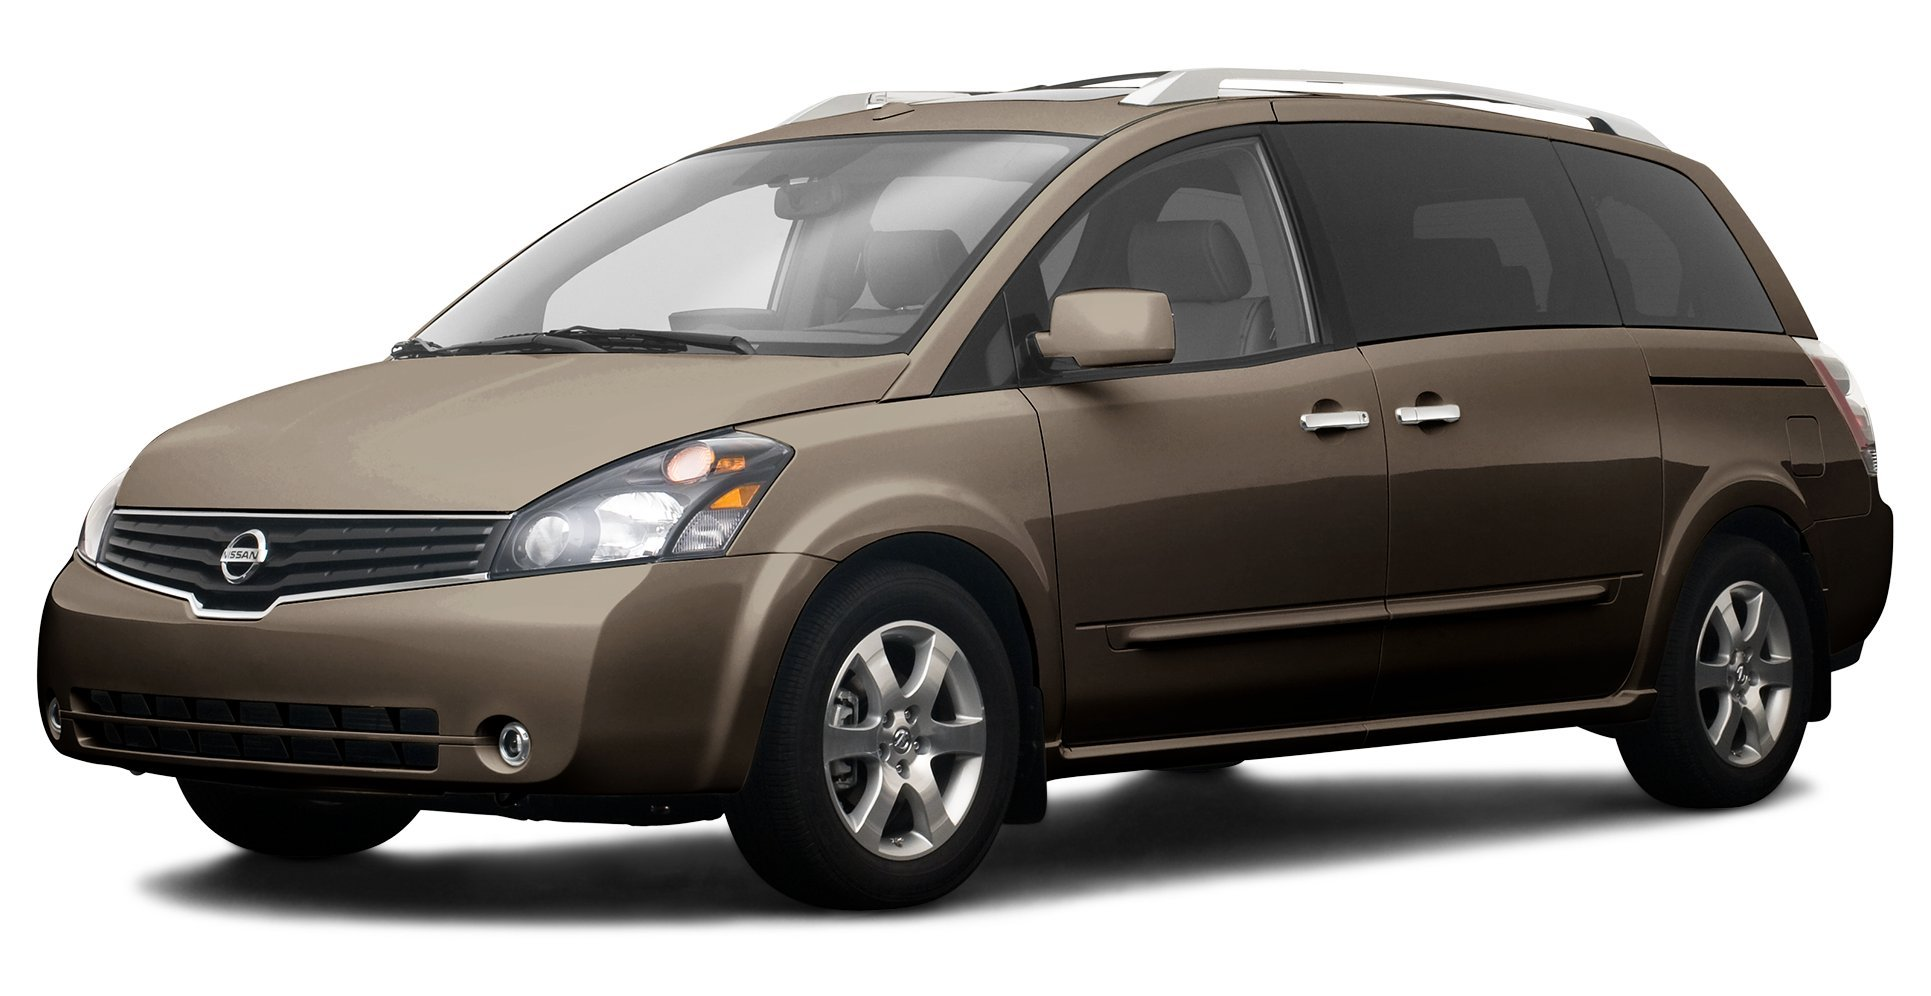 2009 Volkswagen Routan S, 4-Door Wagon, 2009 Nissan Quest Base, 4-Door ...